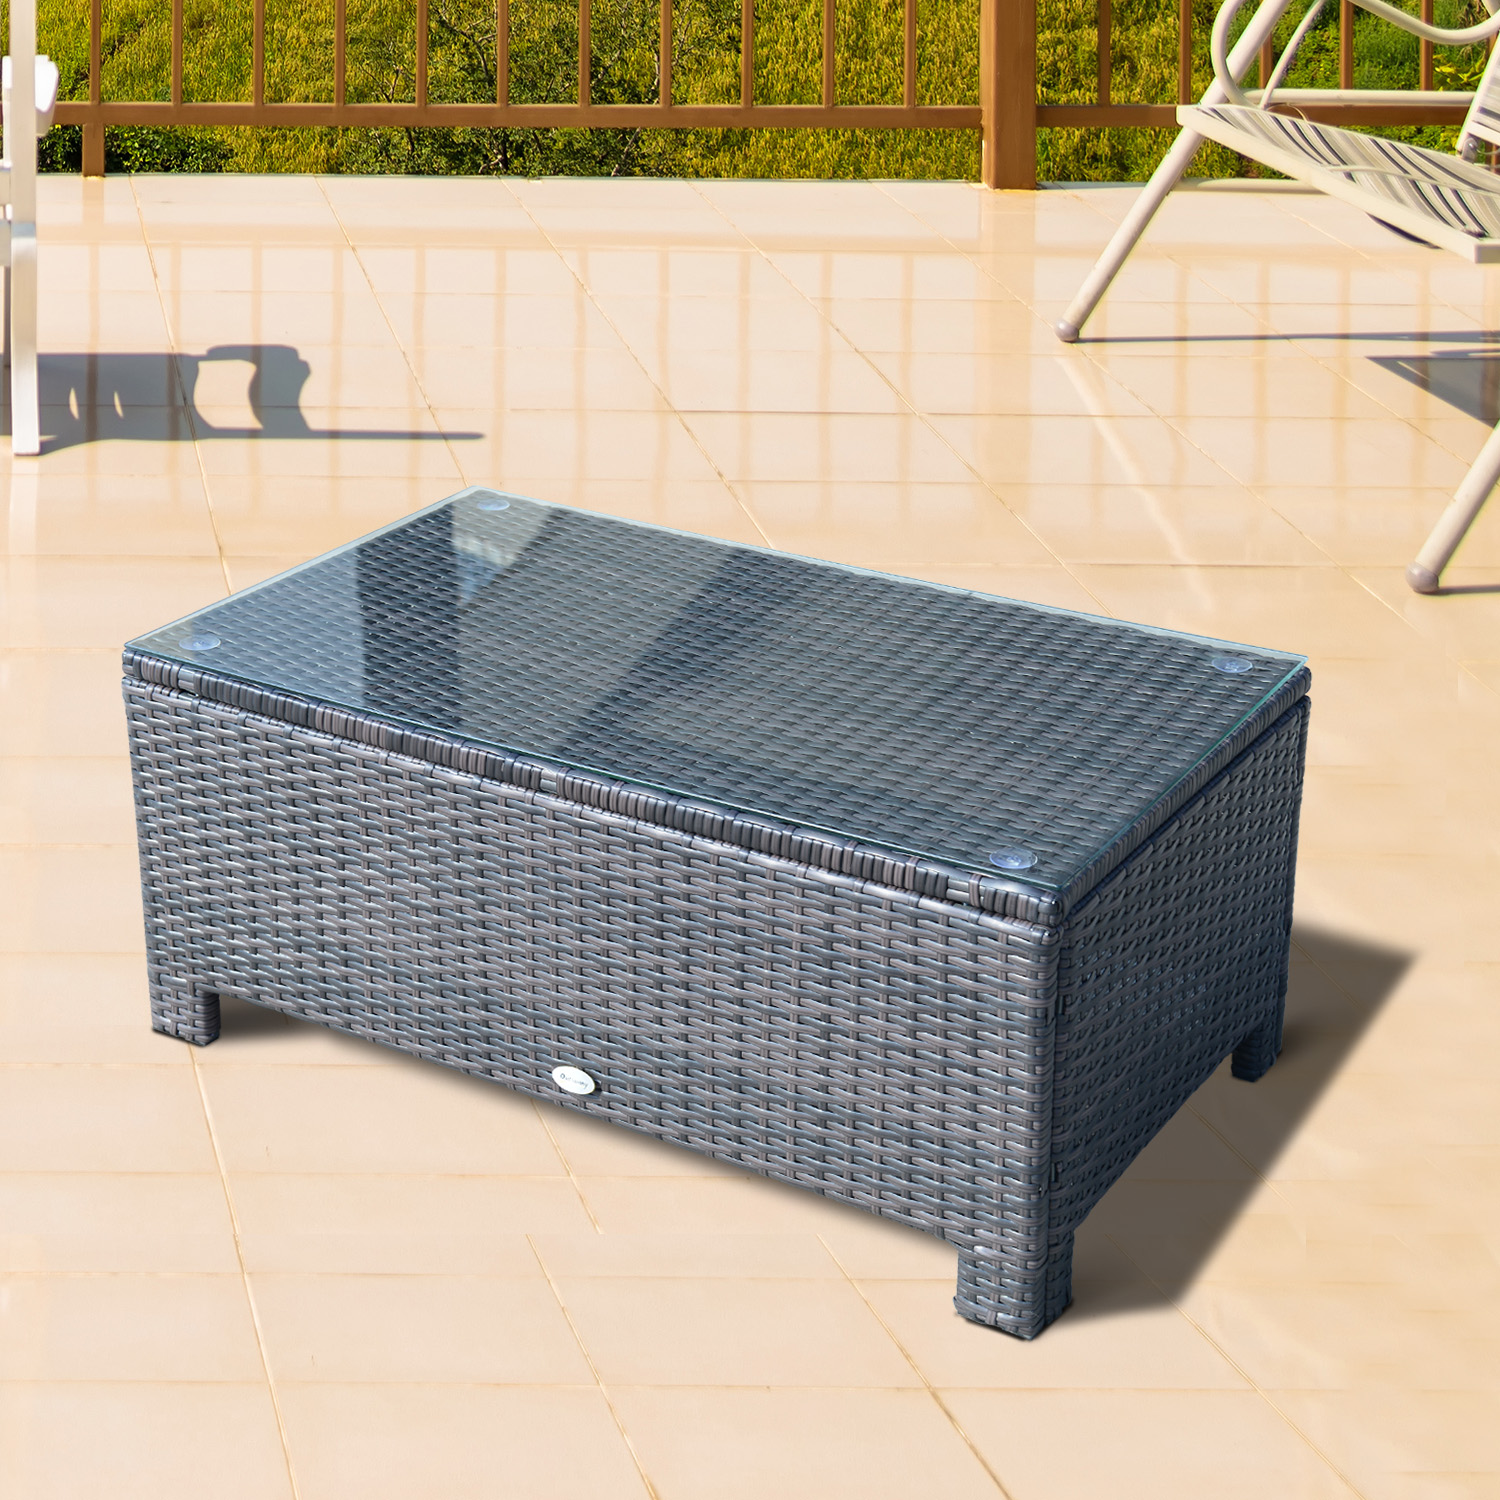 Prime Details About Outsunny Rattan Coffee Side Table Garden Patio Conservatory Tempered Glass Brown Download Free Architecture Designs Aeocymadebymaigaardcom